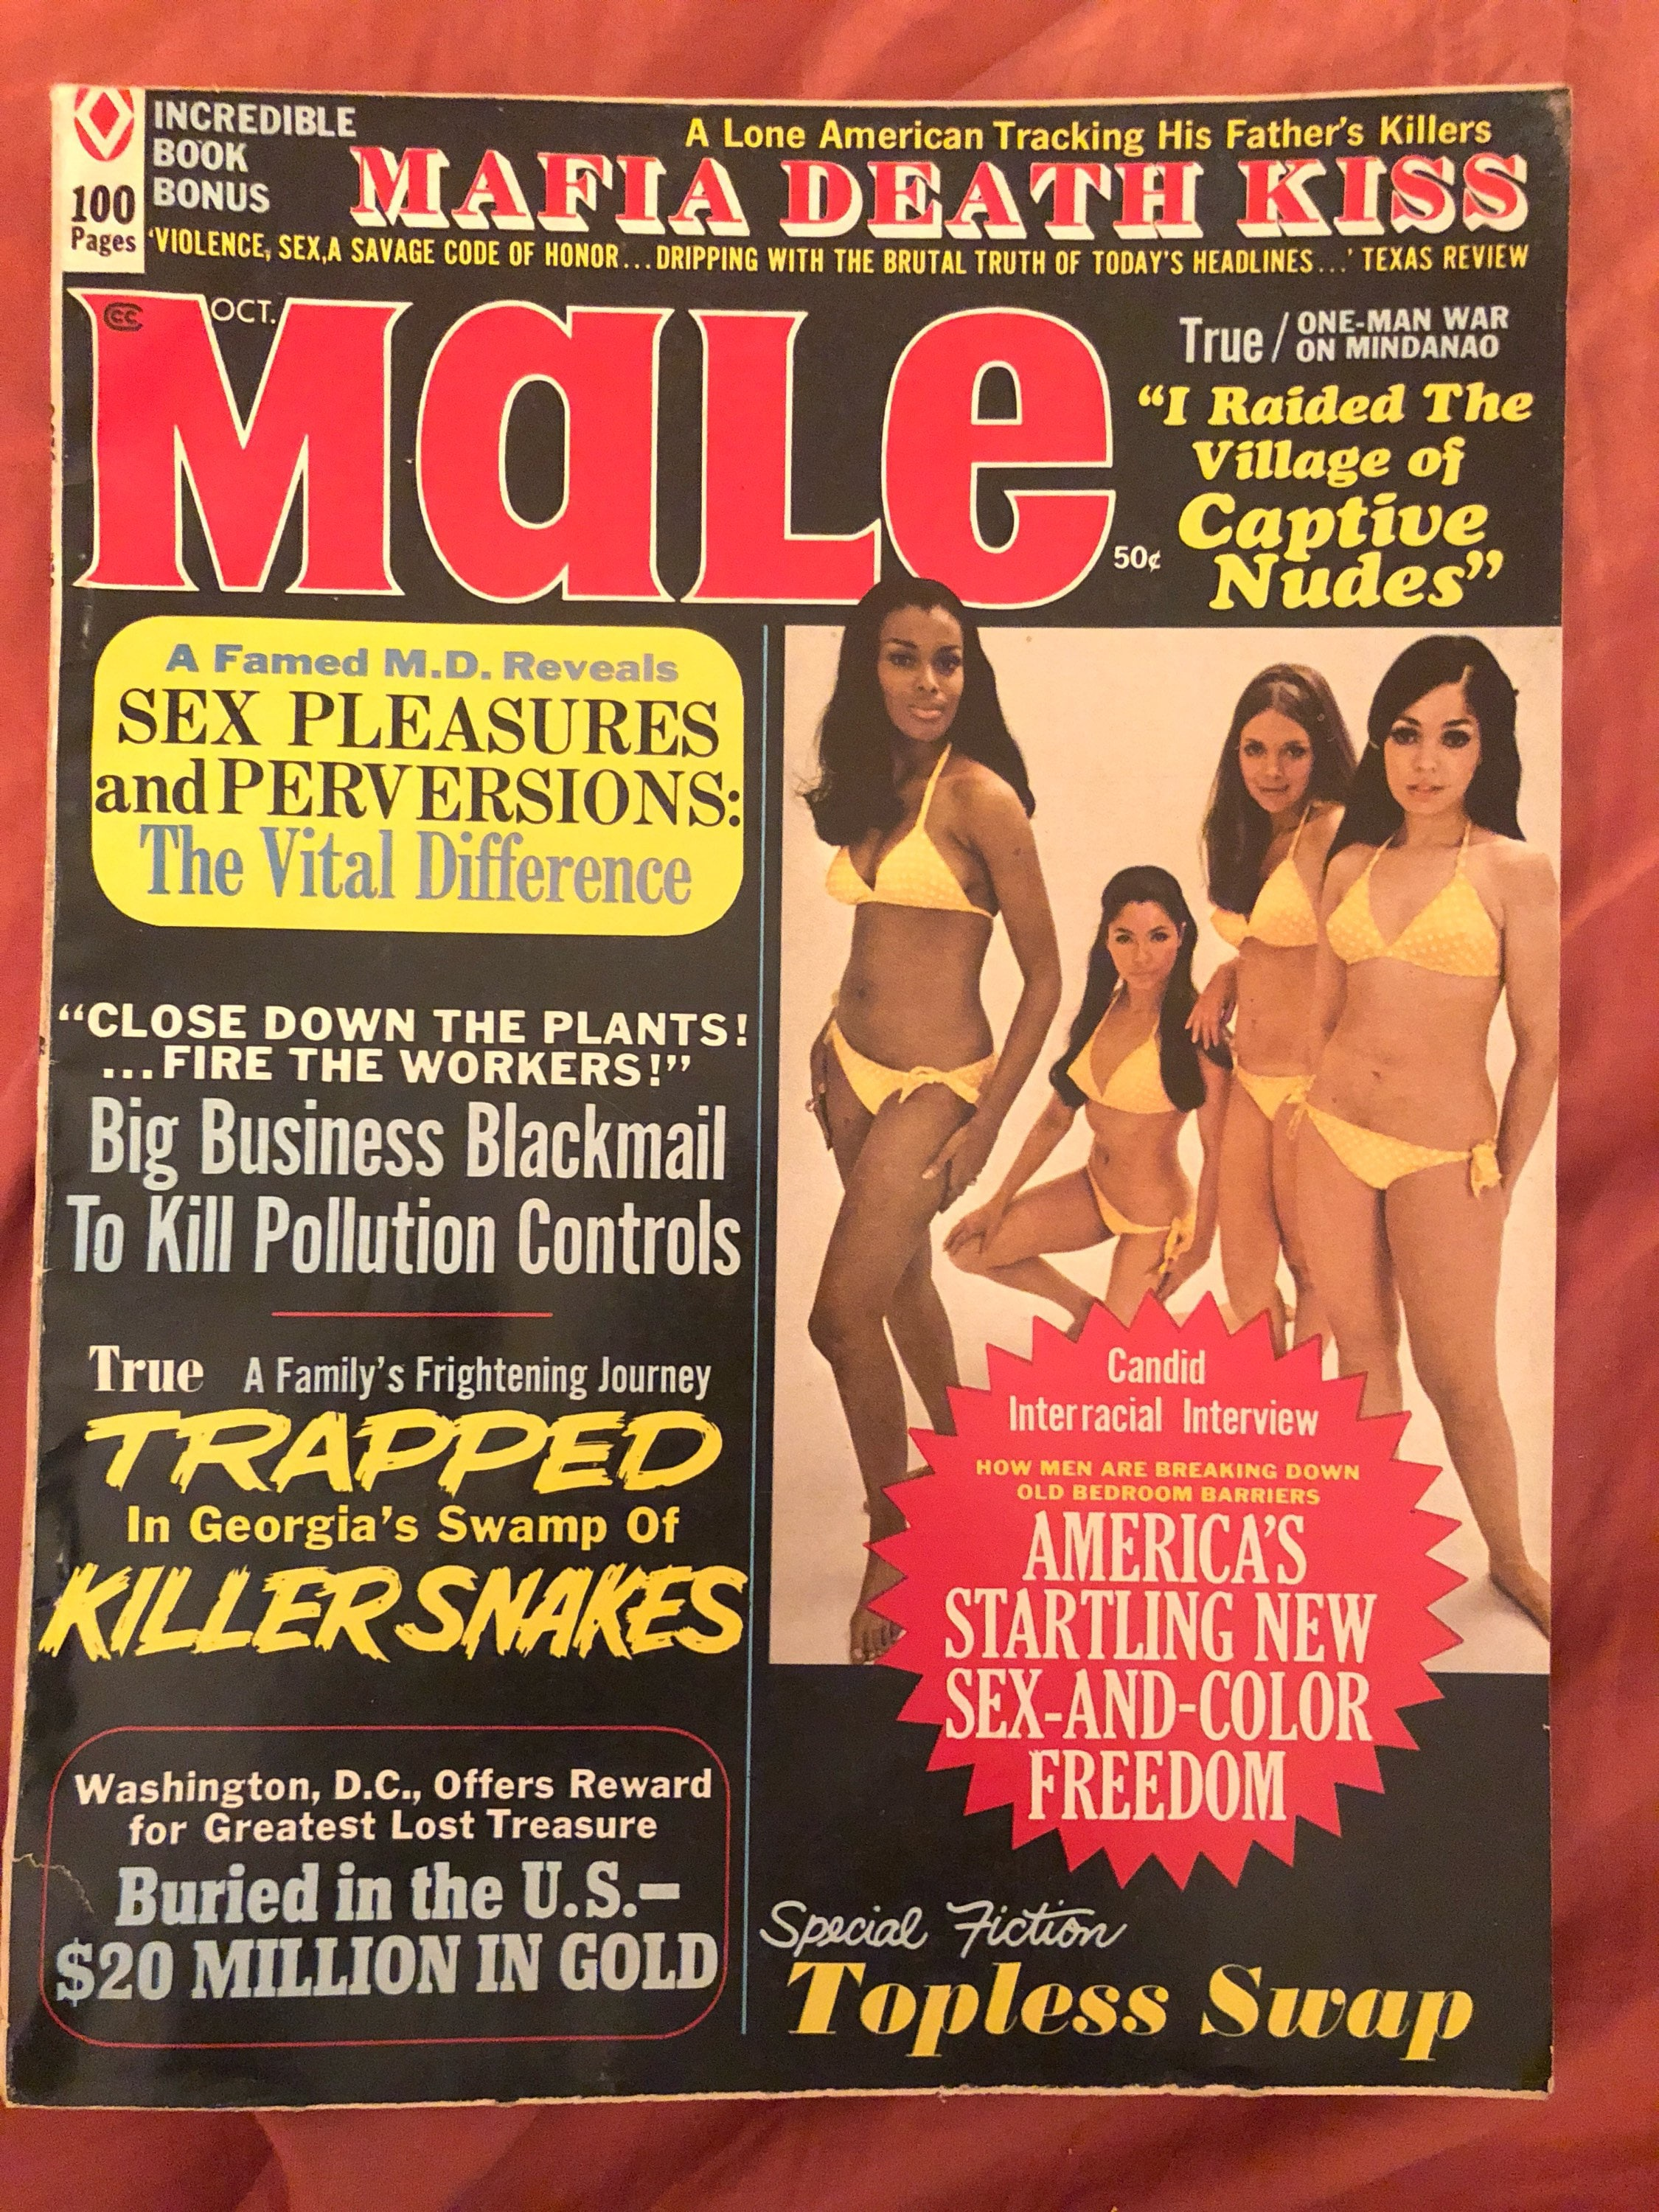 R kelly sex scandal with underage girls